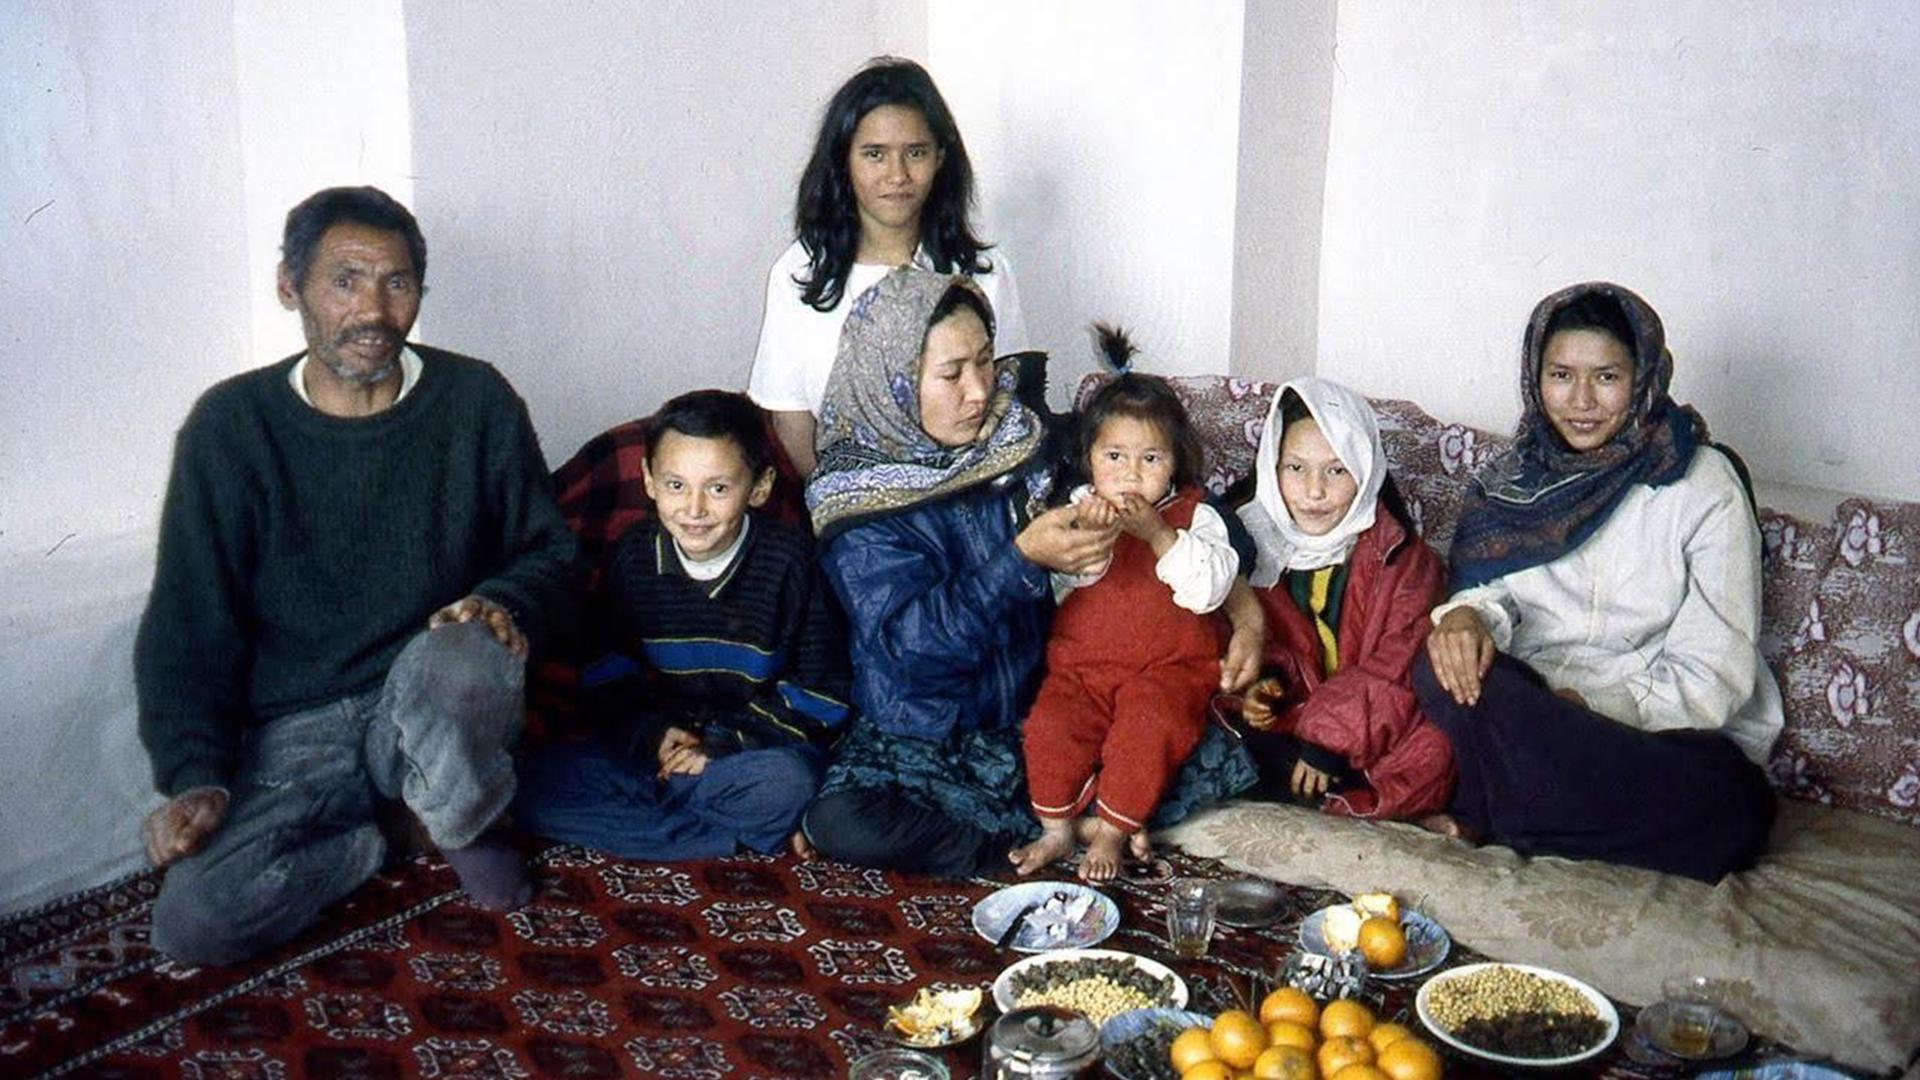 young Lina Tori Jan with family